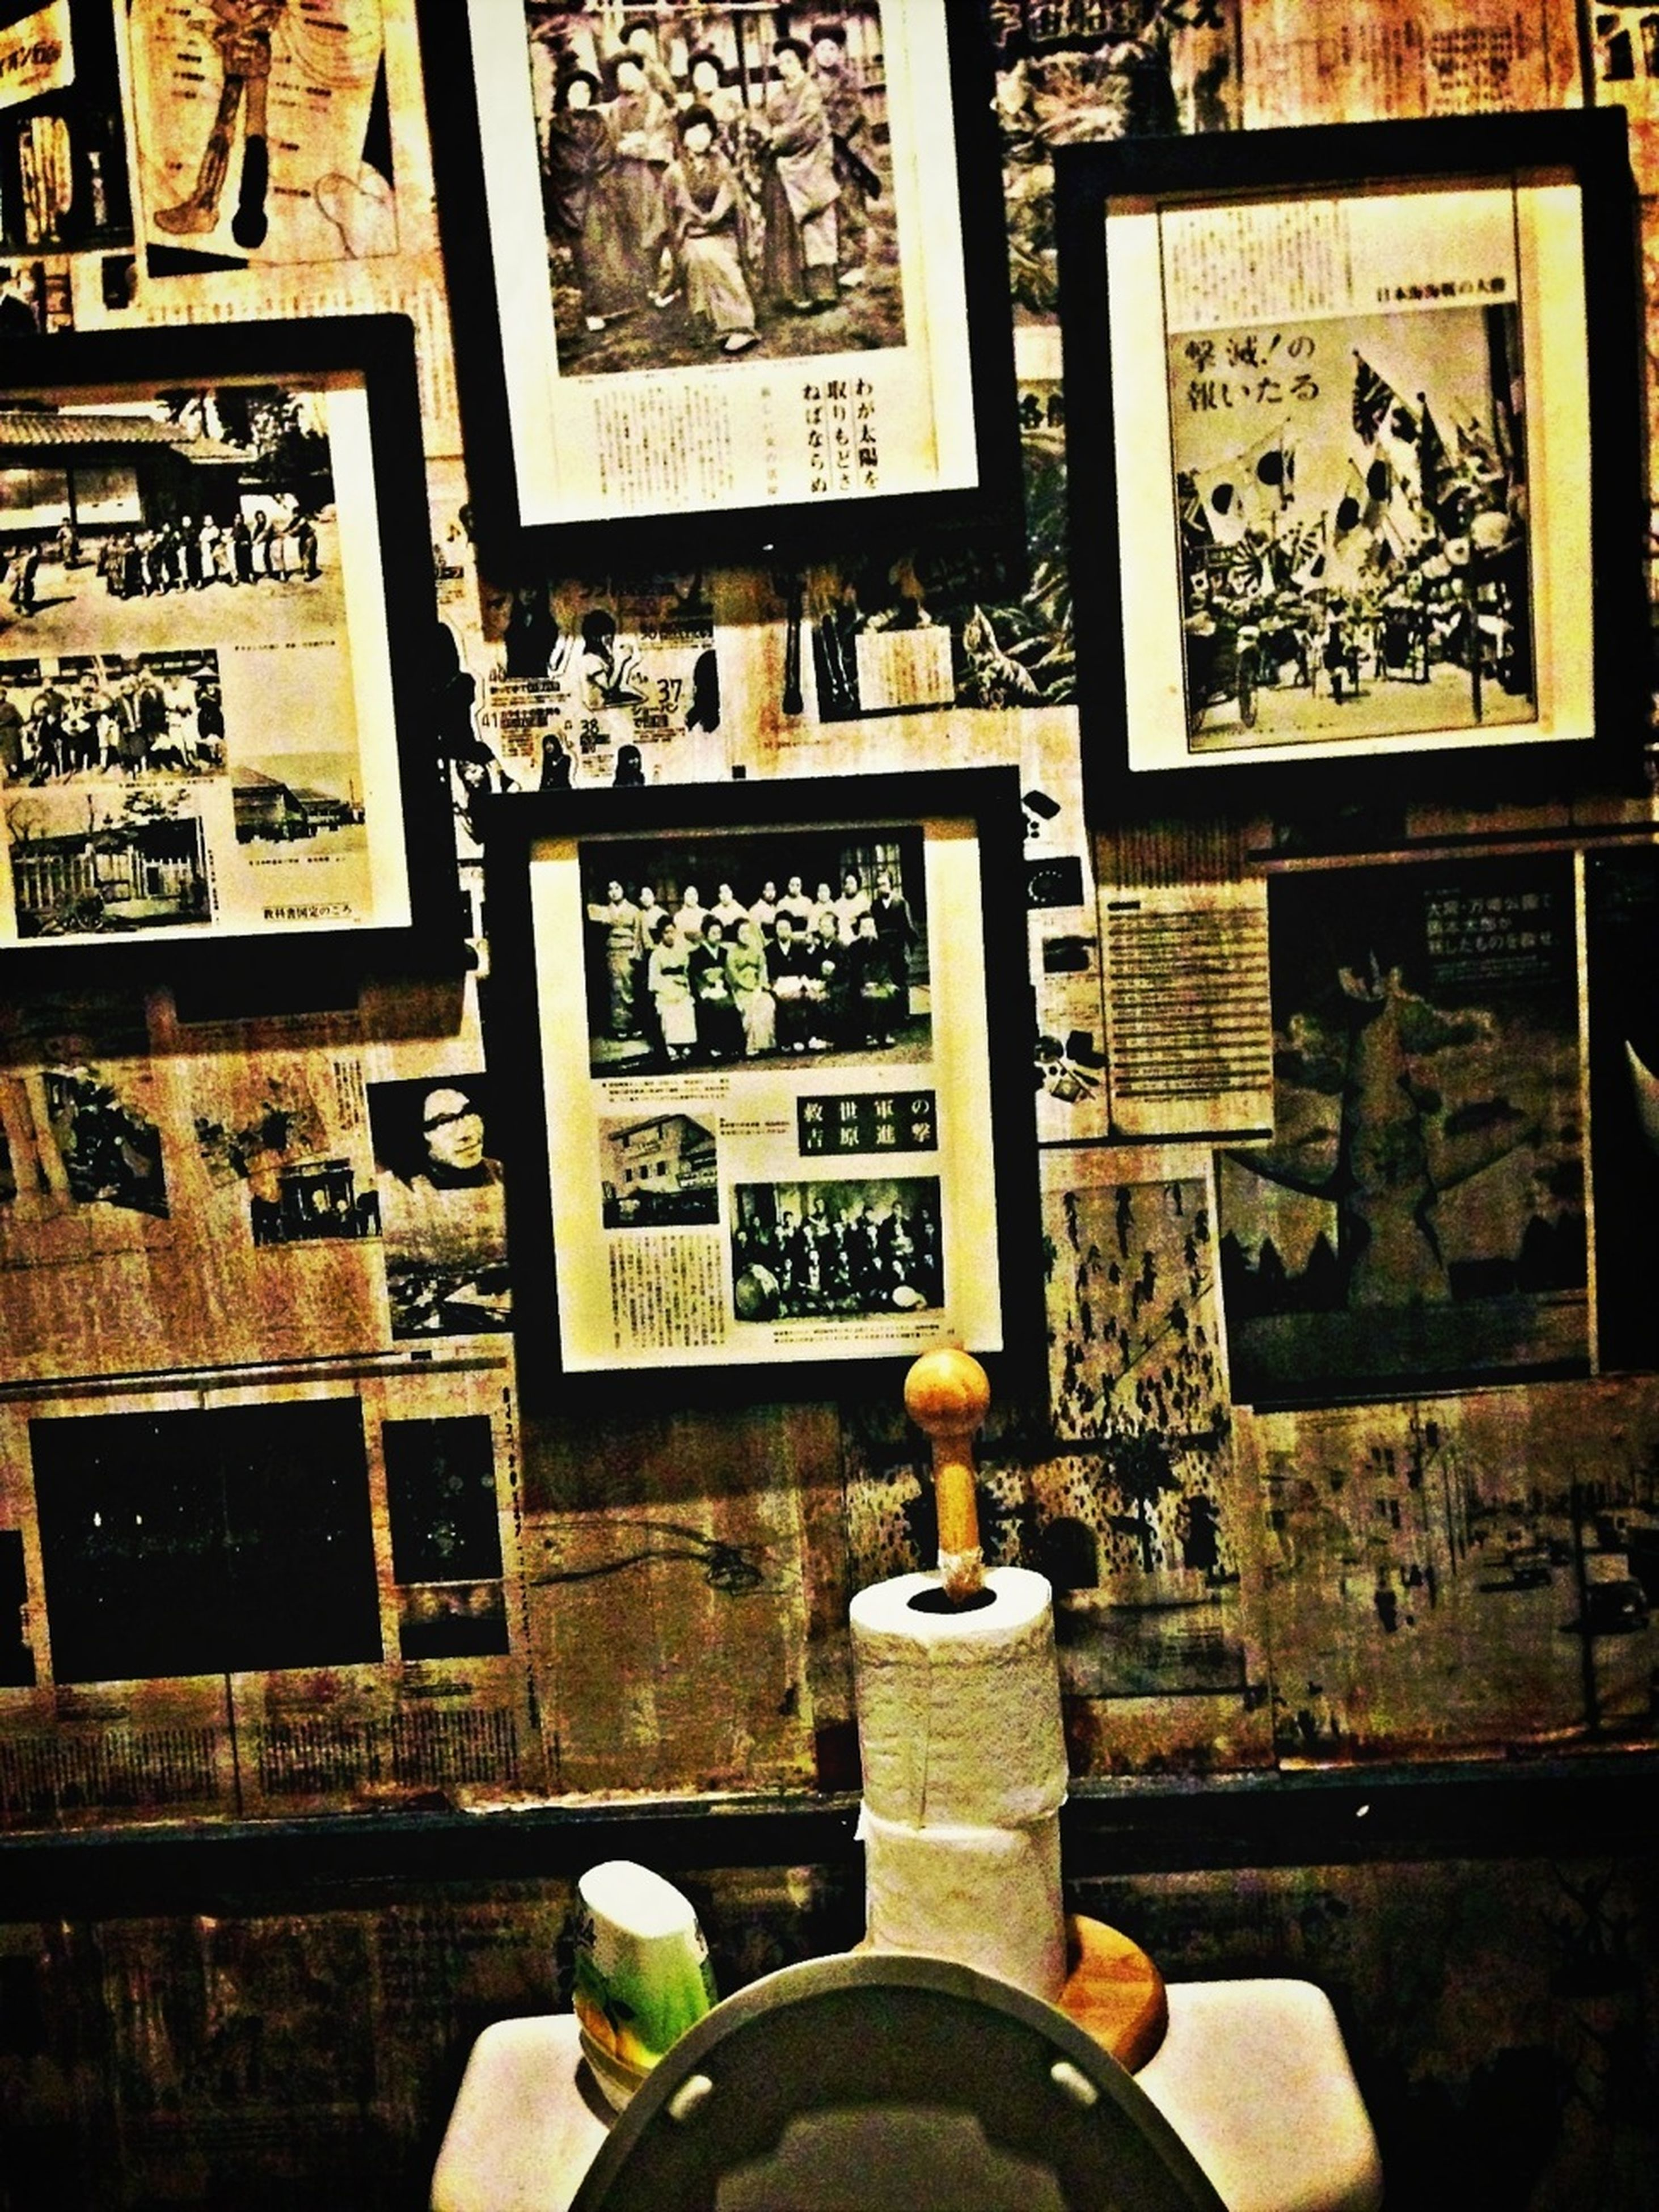 indoors, old, art, art and craft, text, old-fashioned, communication, high angle view, human representation, creativity, wall - building feature, memories, metal, retro styled, day, part of, history, the past, spirituality